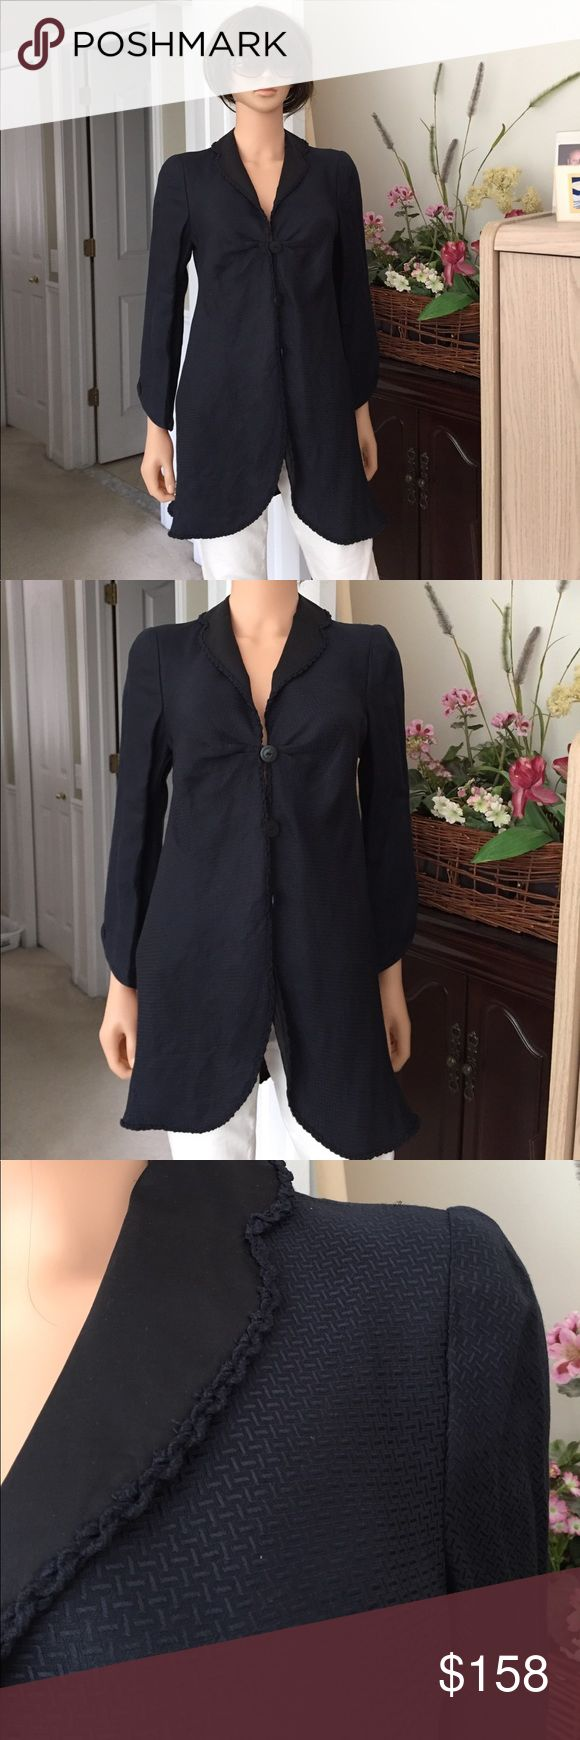 💐ARMANI ...navy blue lined dressy jacket NWT....GIORGIO ARMANI dark navy blue 60% linen & 40% acetate outer, 100% silk lining, jacket, made in Italy, size 6, Italian size 40, see photos, excellent condition, bought for a dinner party but decided to wear something else, in the closet it went, time to sell, no trade, no pp, smoke and pet free environment Giorgio Armani  Jackets & Coats